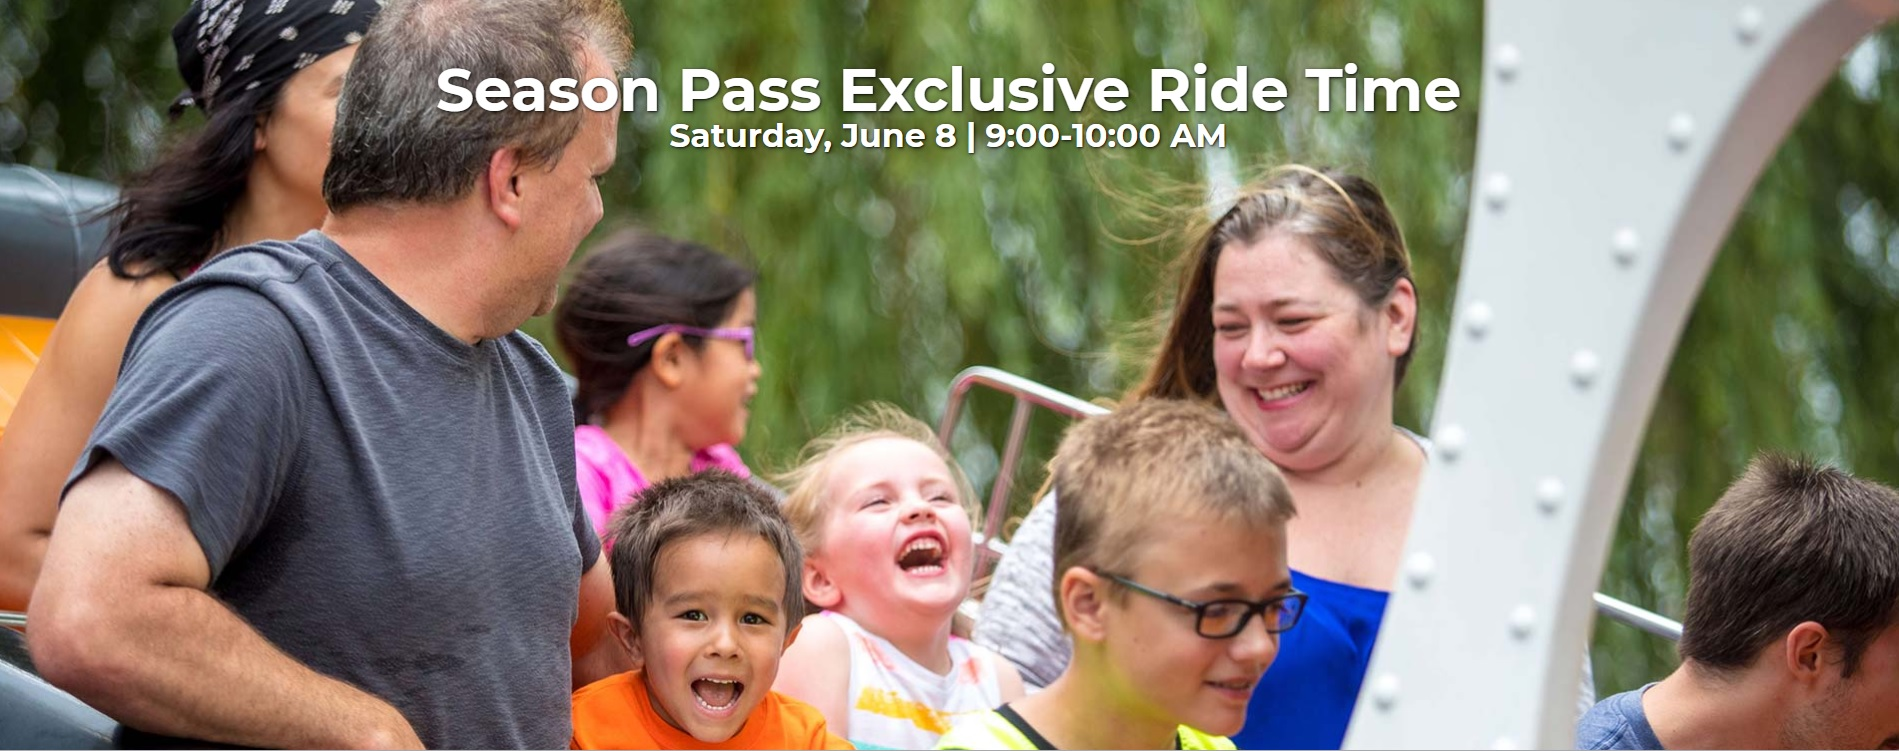 Season Pass Exclusive Ride Time